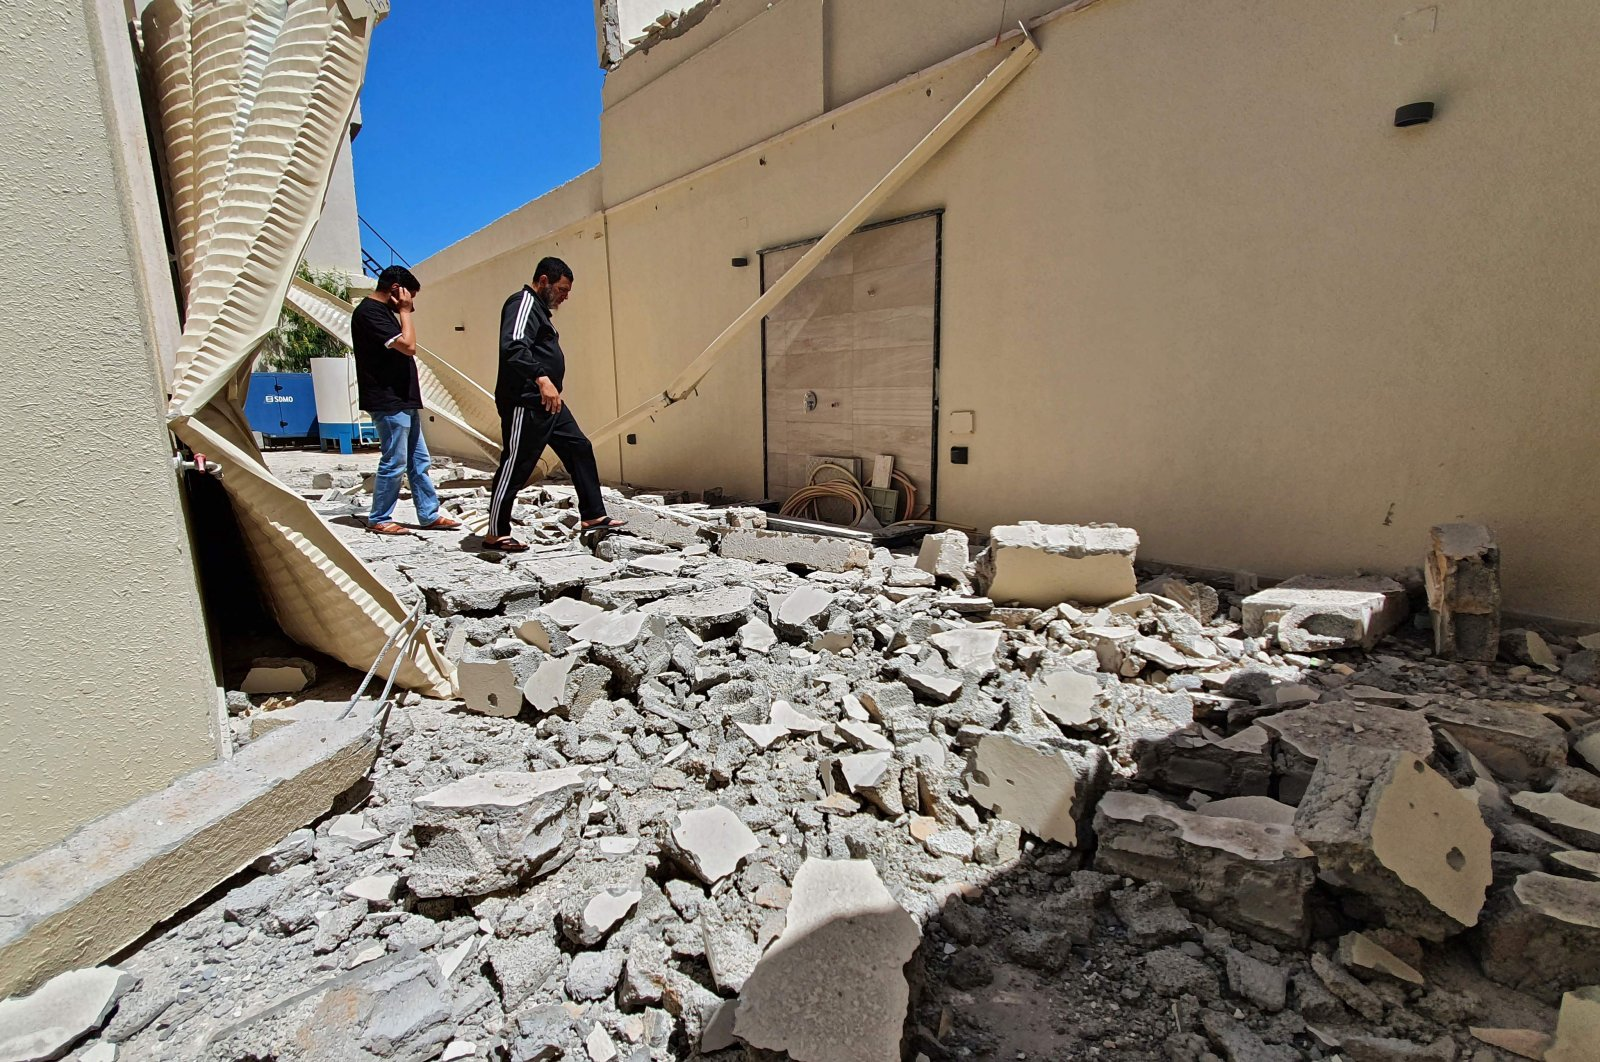 Residents walk amid the rubble of a building damaged when forces loyal to eastern-based warlord Khalifa Haftar shelled the residential neighborhood of Znatah in the Libyan capital Tripoli, held by the U.N.recognized Government of National Accord (GNA), May 1, 2020. (AFP Photo)